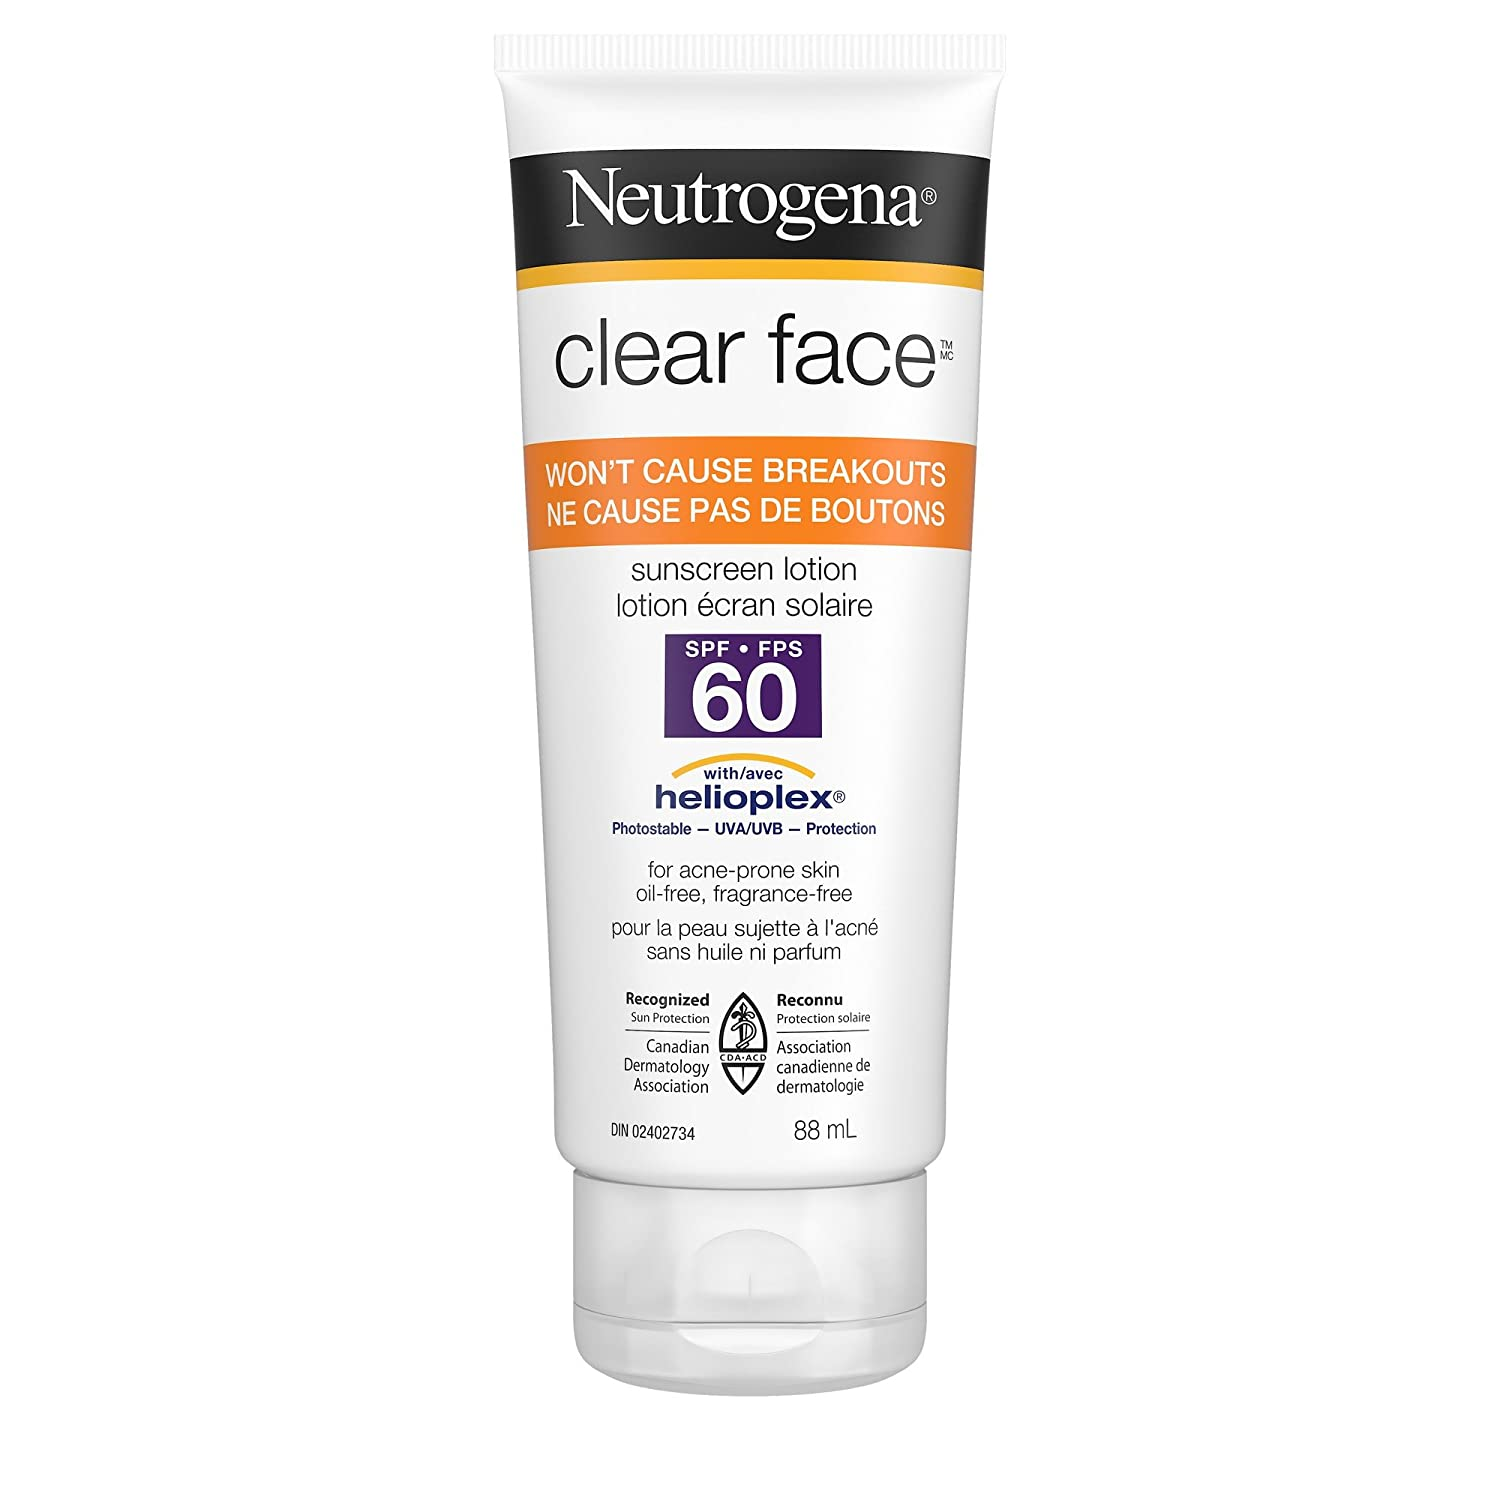 Neutrogena Clear Face Sunscreen Lotion SPF 60 for Acne Prone Skin, Water Resistant, Non Comedogenic, 88ml Neutrogena Suncare